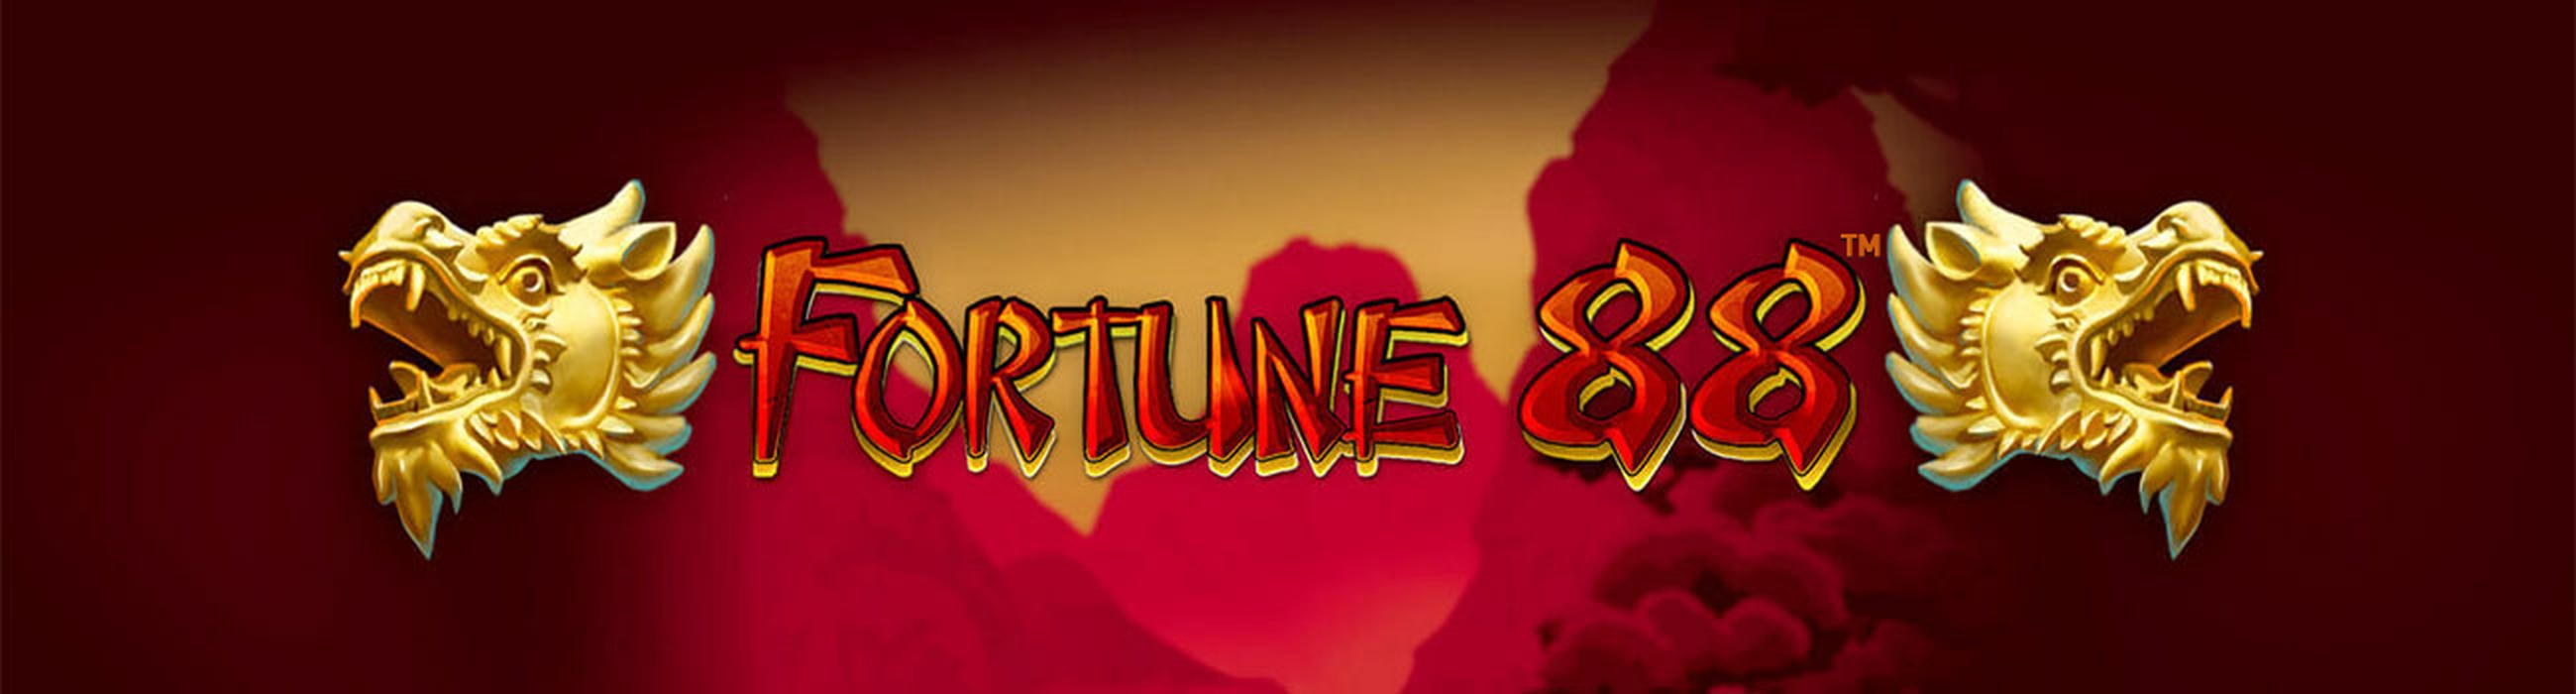 The Fortune 88 Online Slot Demo Game by Mobilots